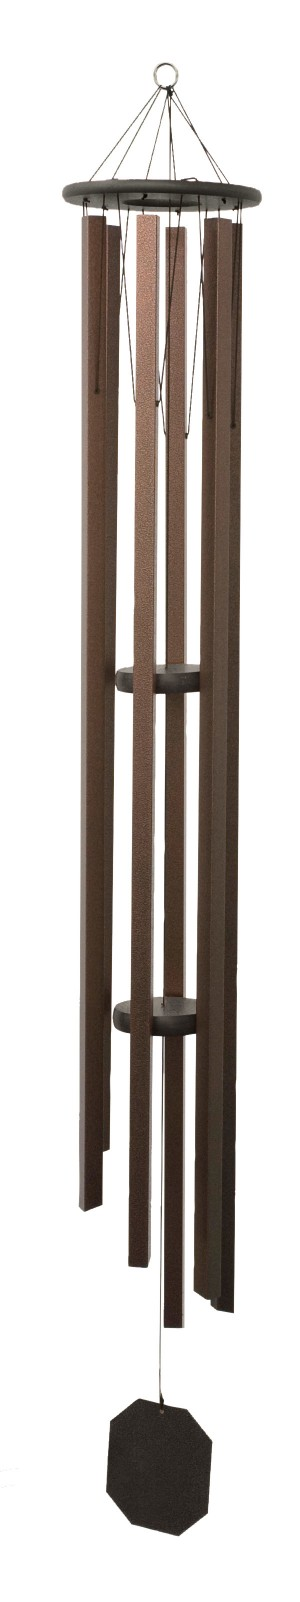 wind chime amish made in usa